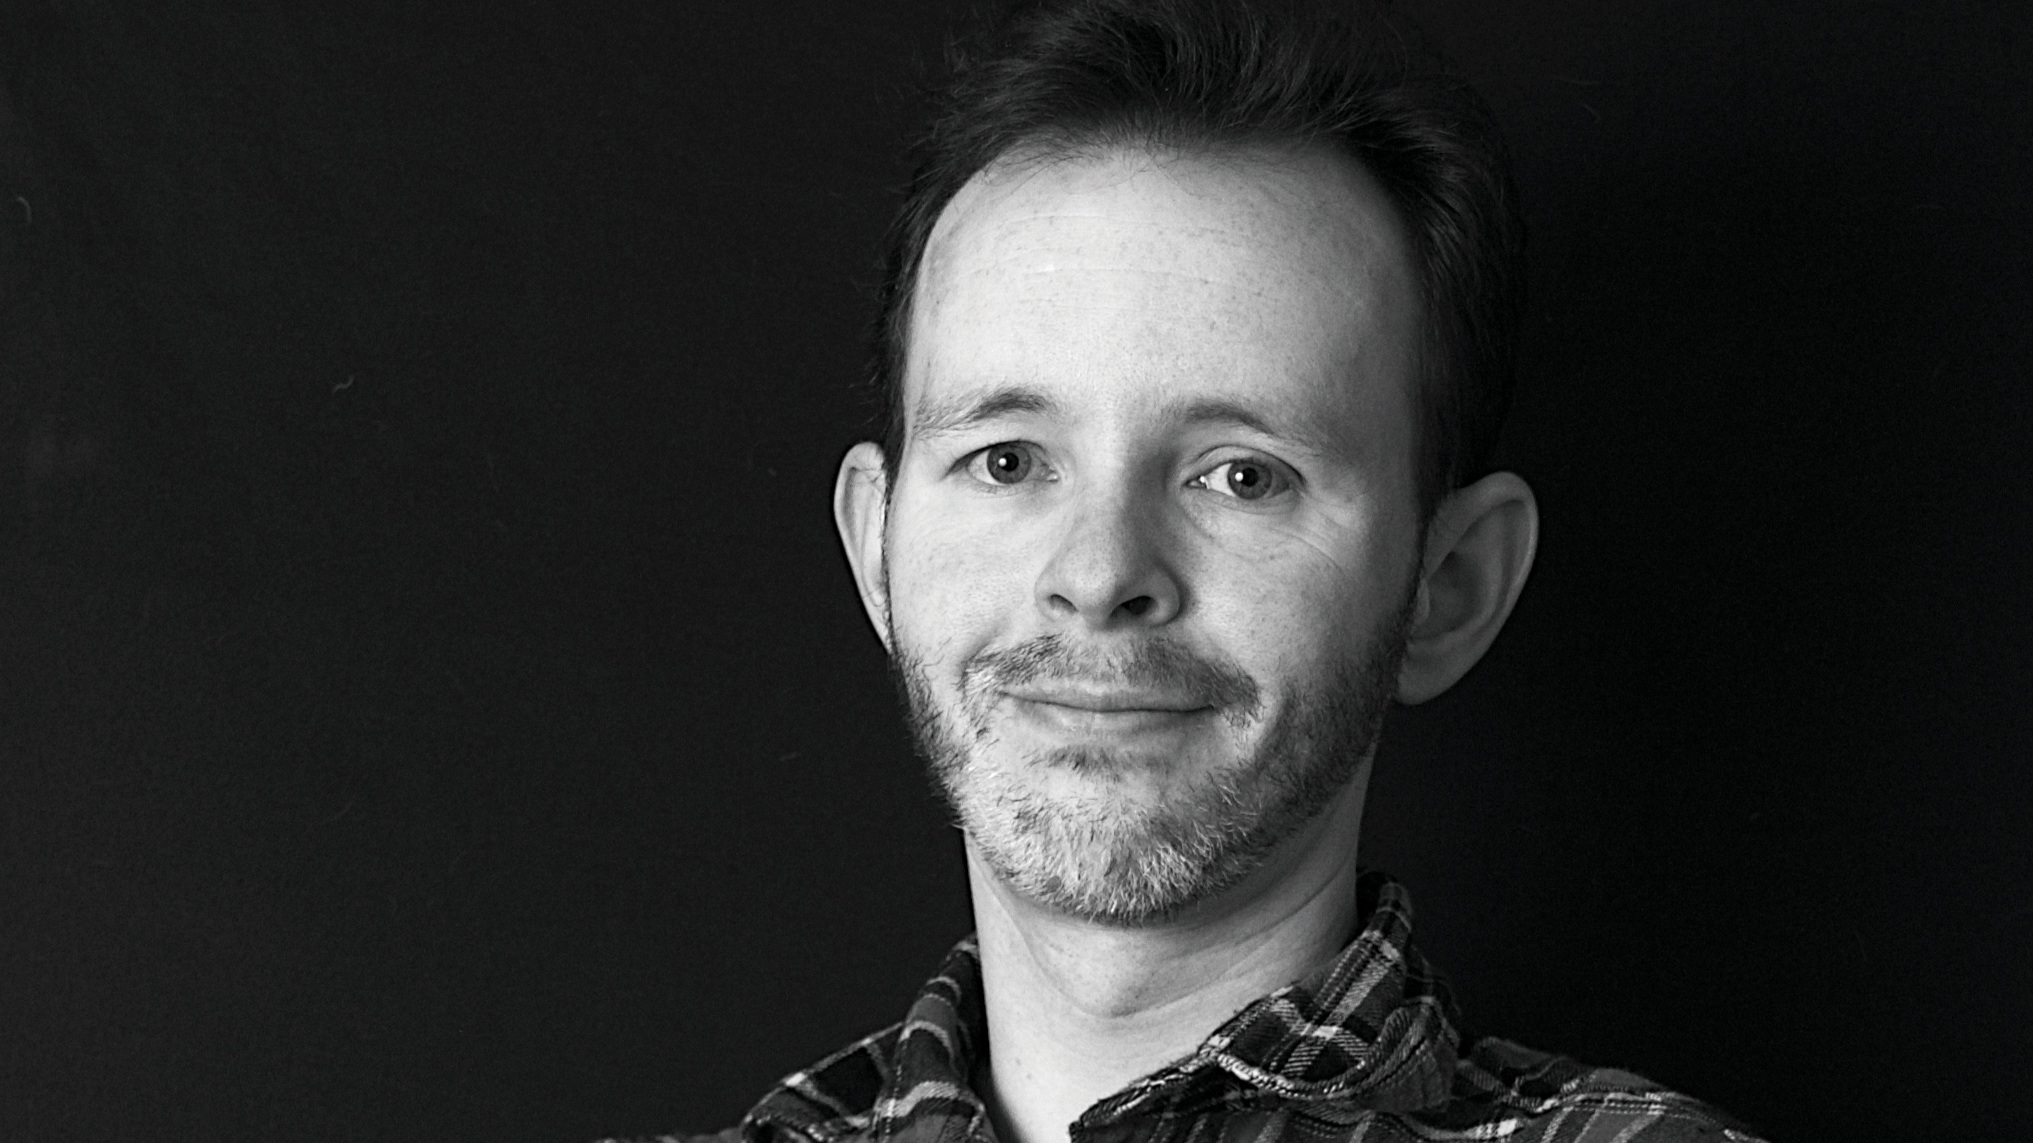 James Milne - Photographer and Instructor